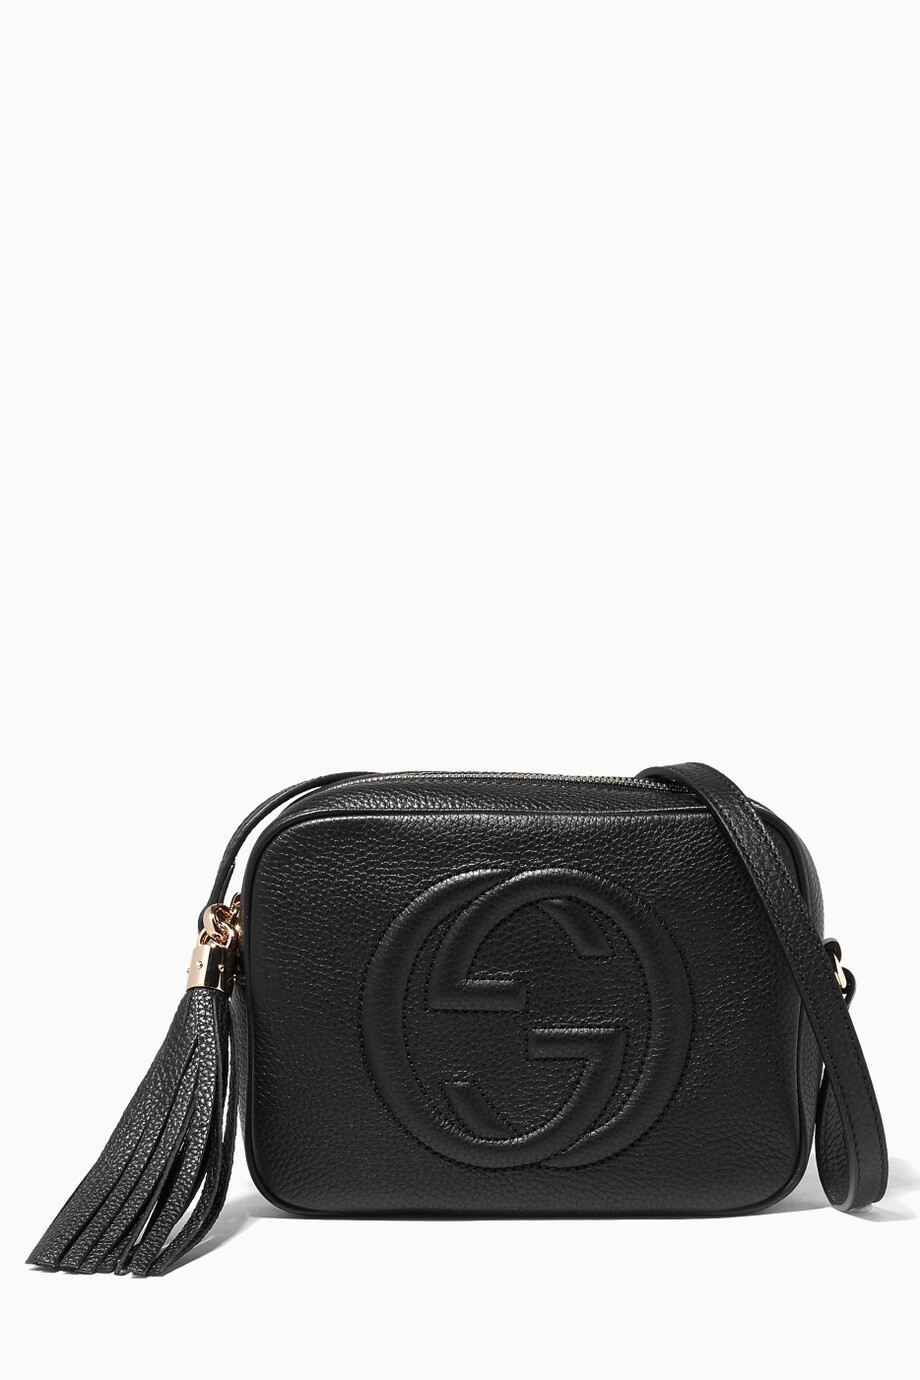 6a3b0fa1852 Shop Gucci Black Black Soho Leather Disco Bag for Women